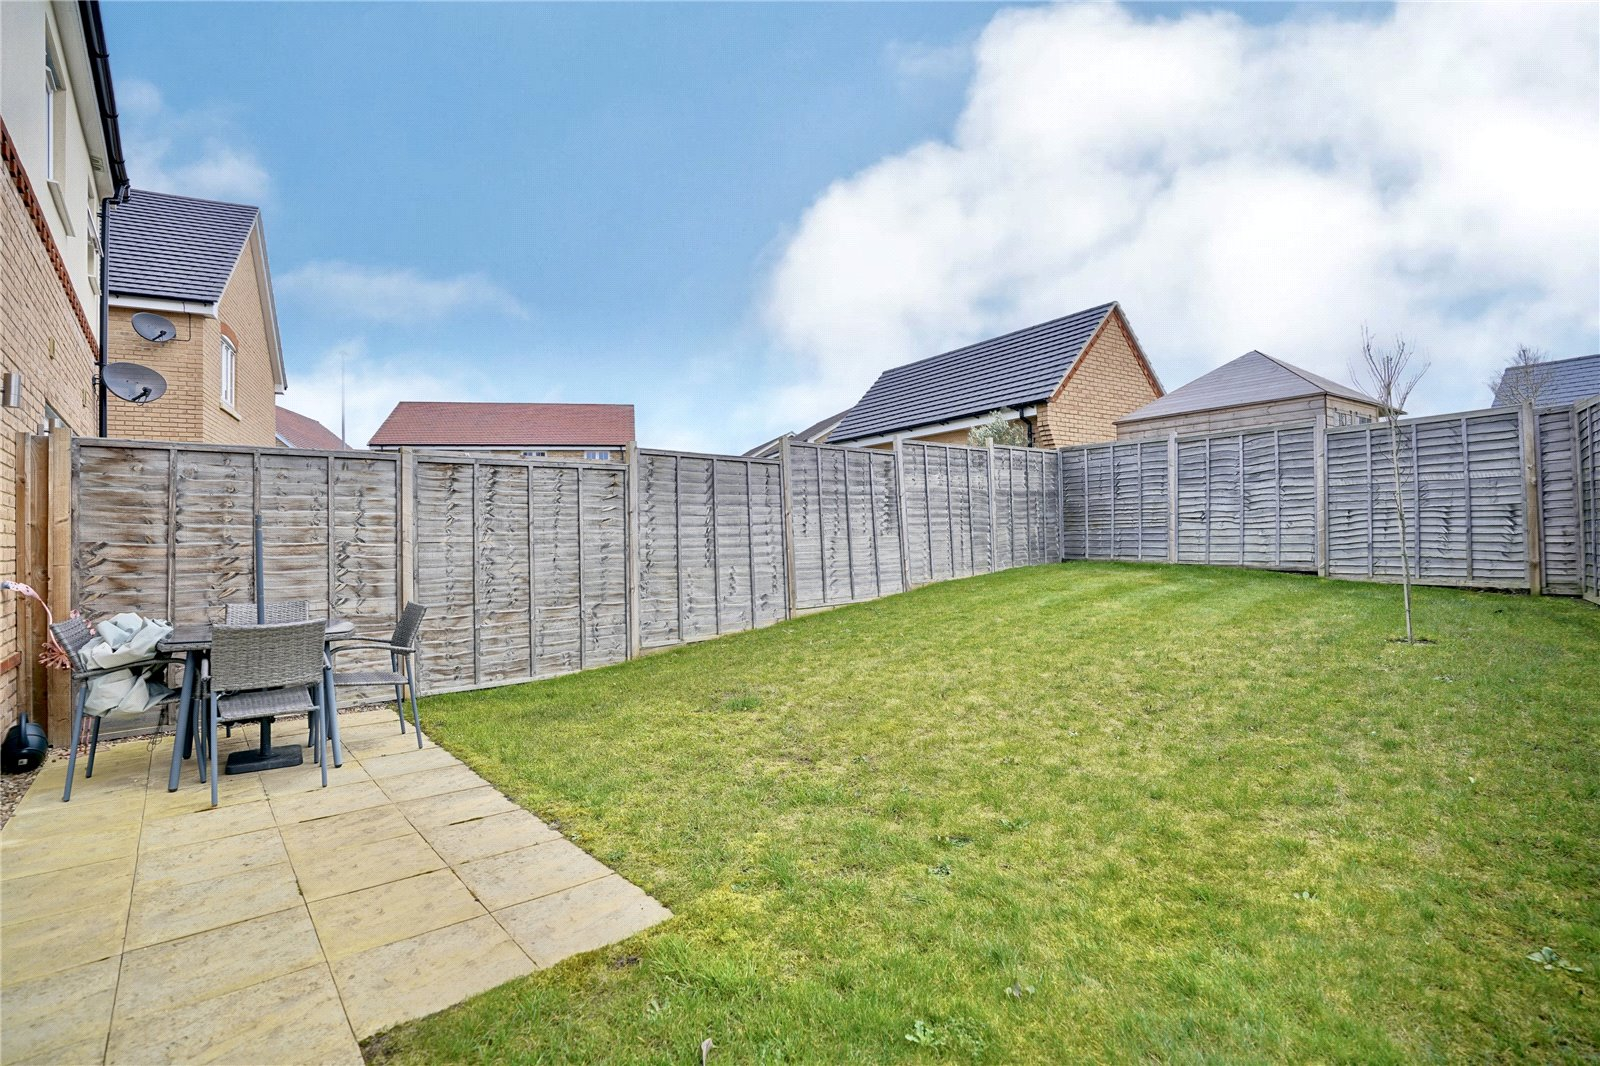 3 bed house for sale in Sawtry, PE28 5ZJ 3